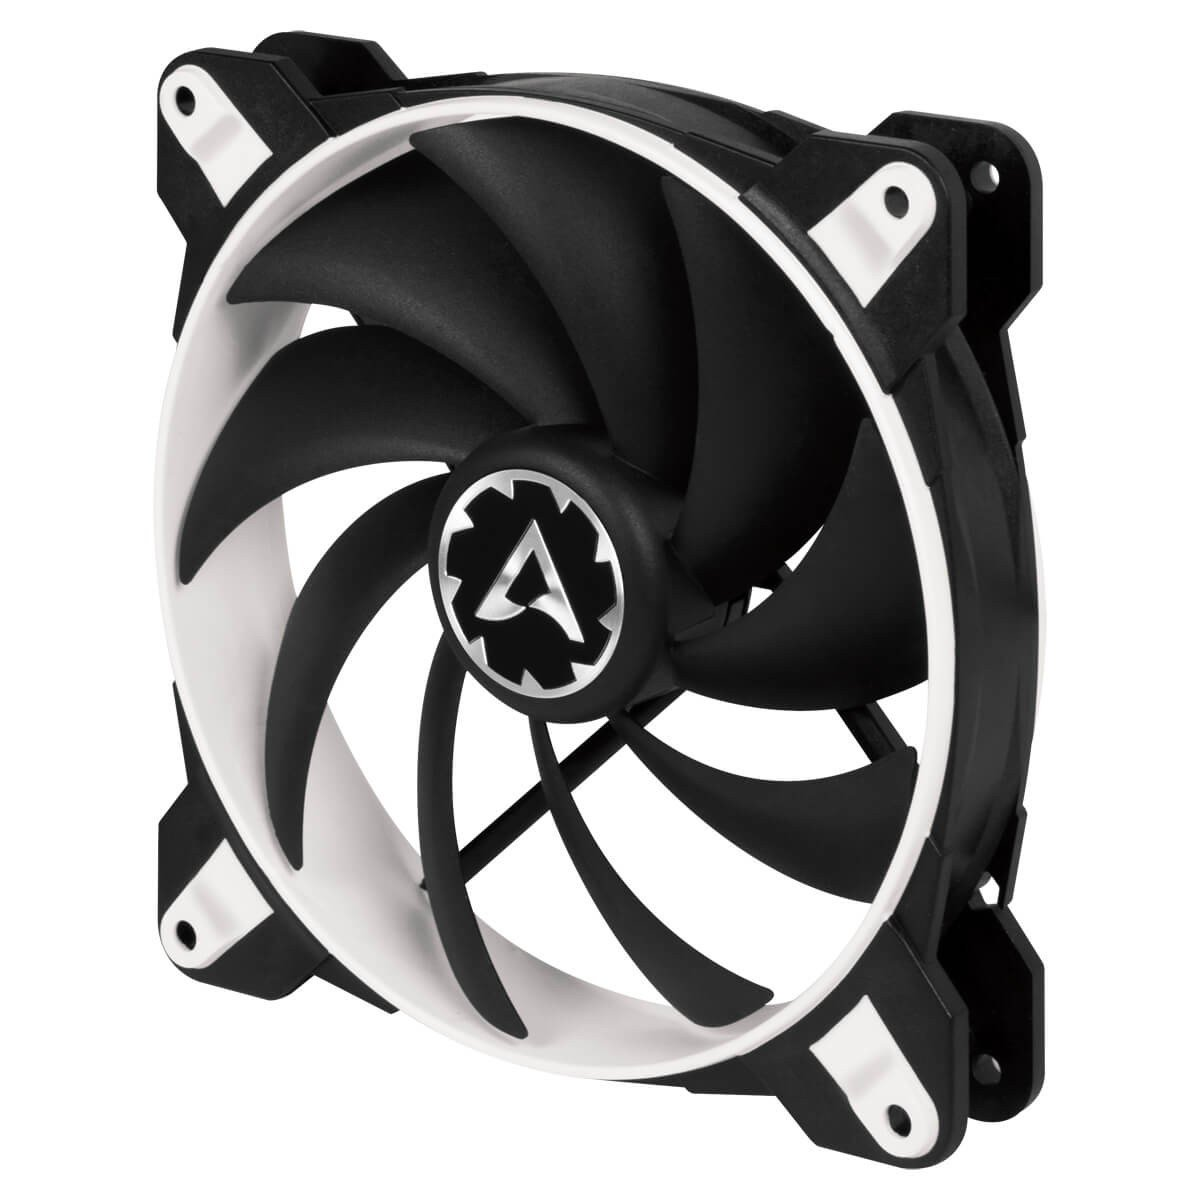 Fan Cooler Arctic Bionix F140-140 Mm Gaming With Pwm Pst Wit